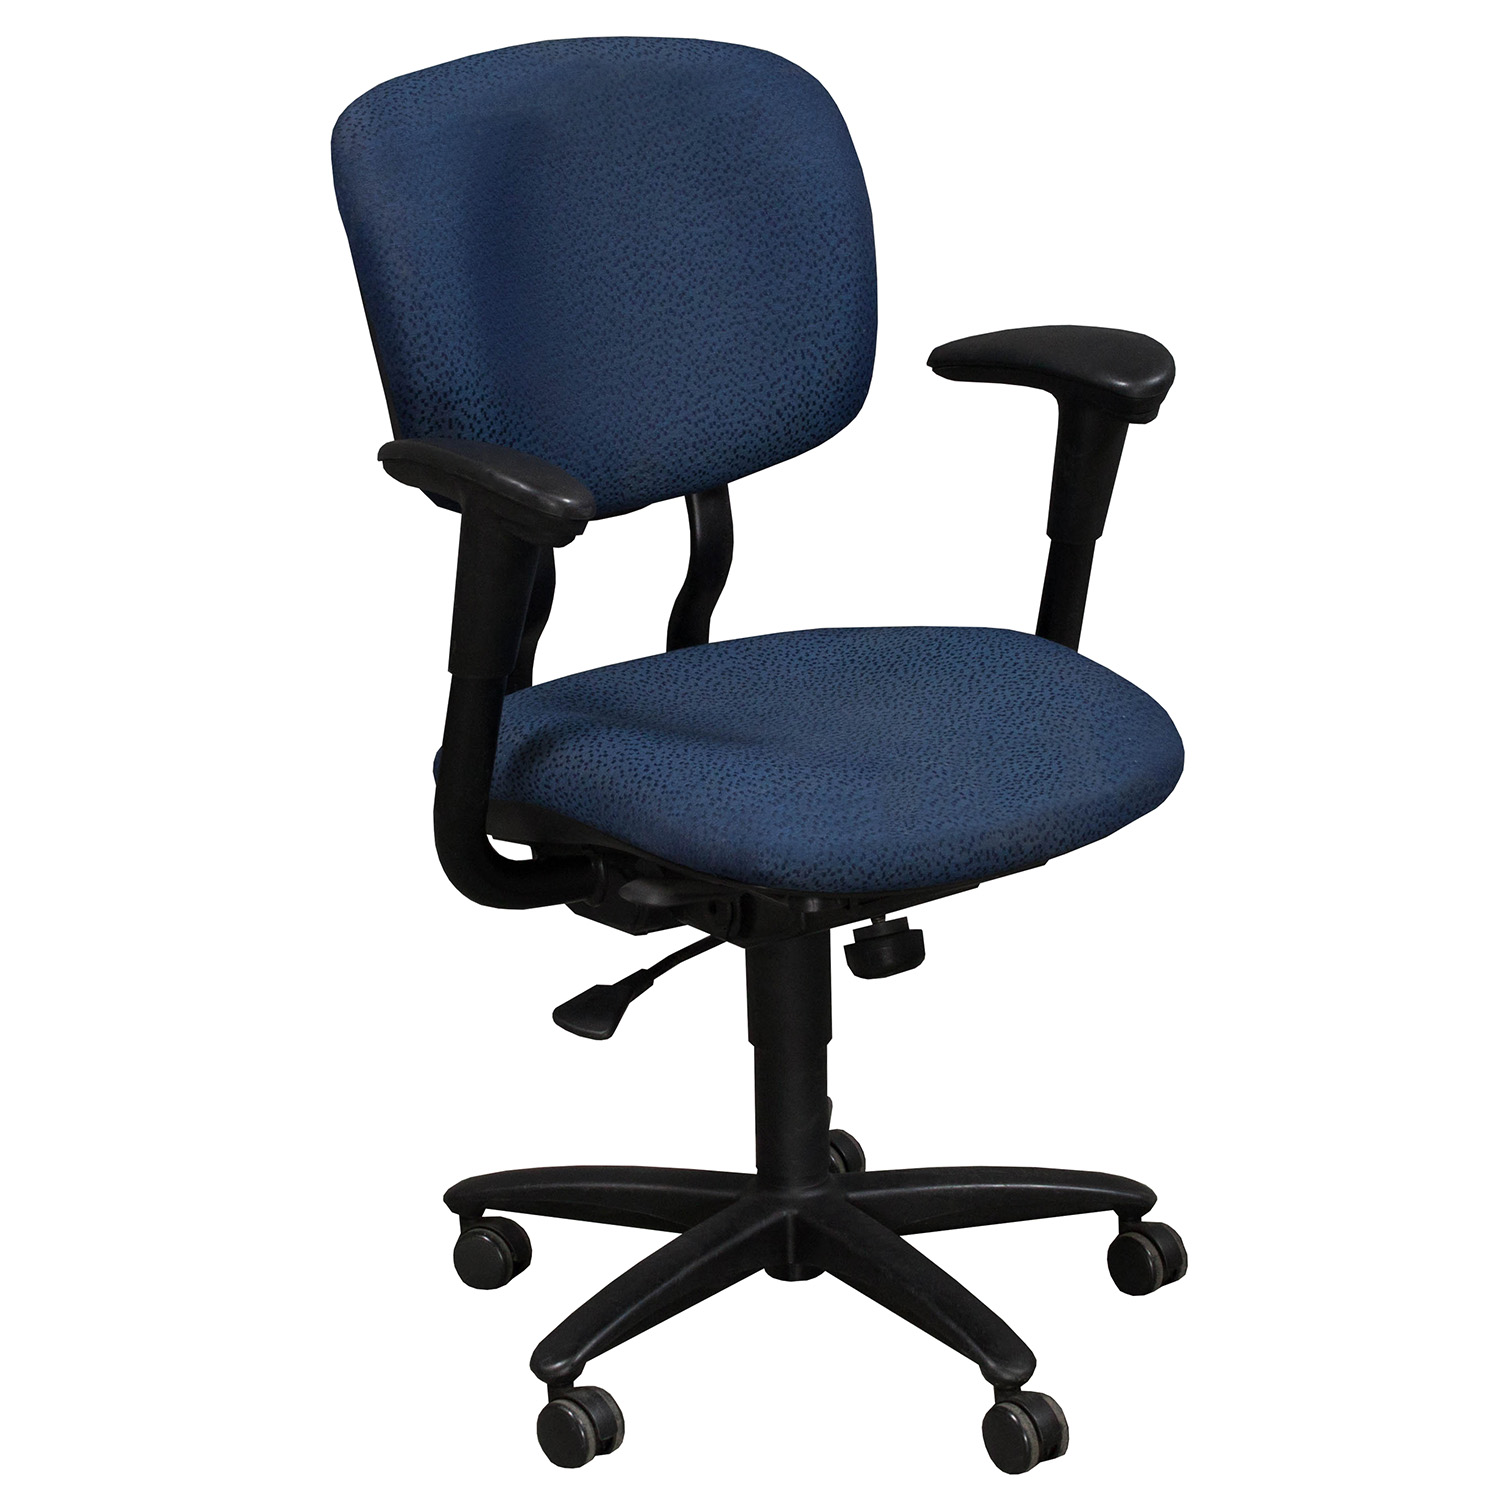 Blue Office Chair Haworth Improv Desk Used Task Chair Blue National